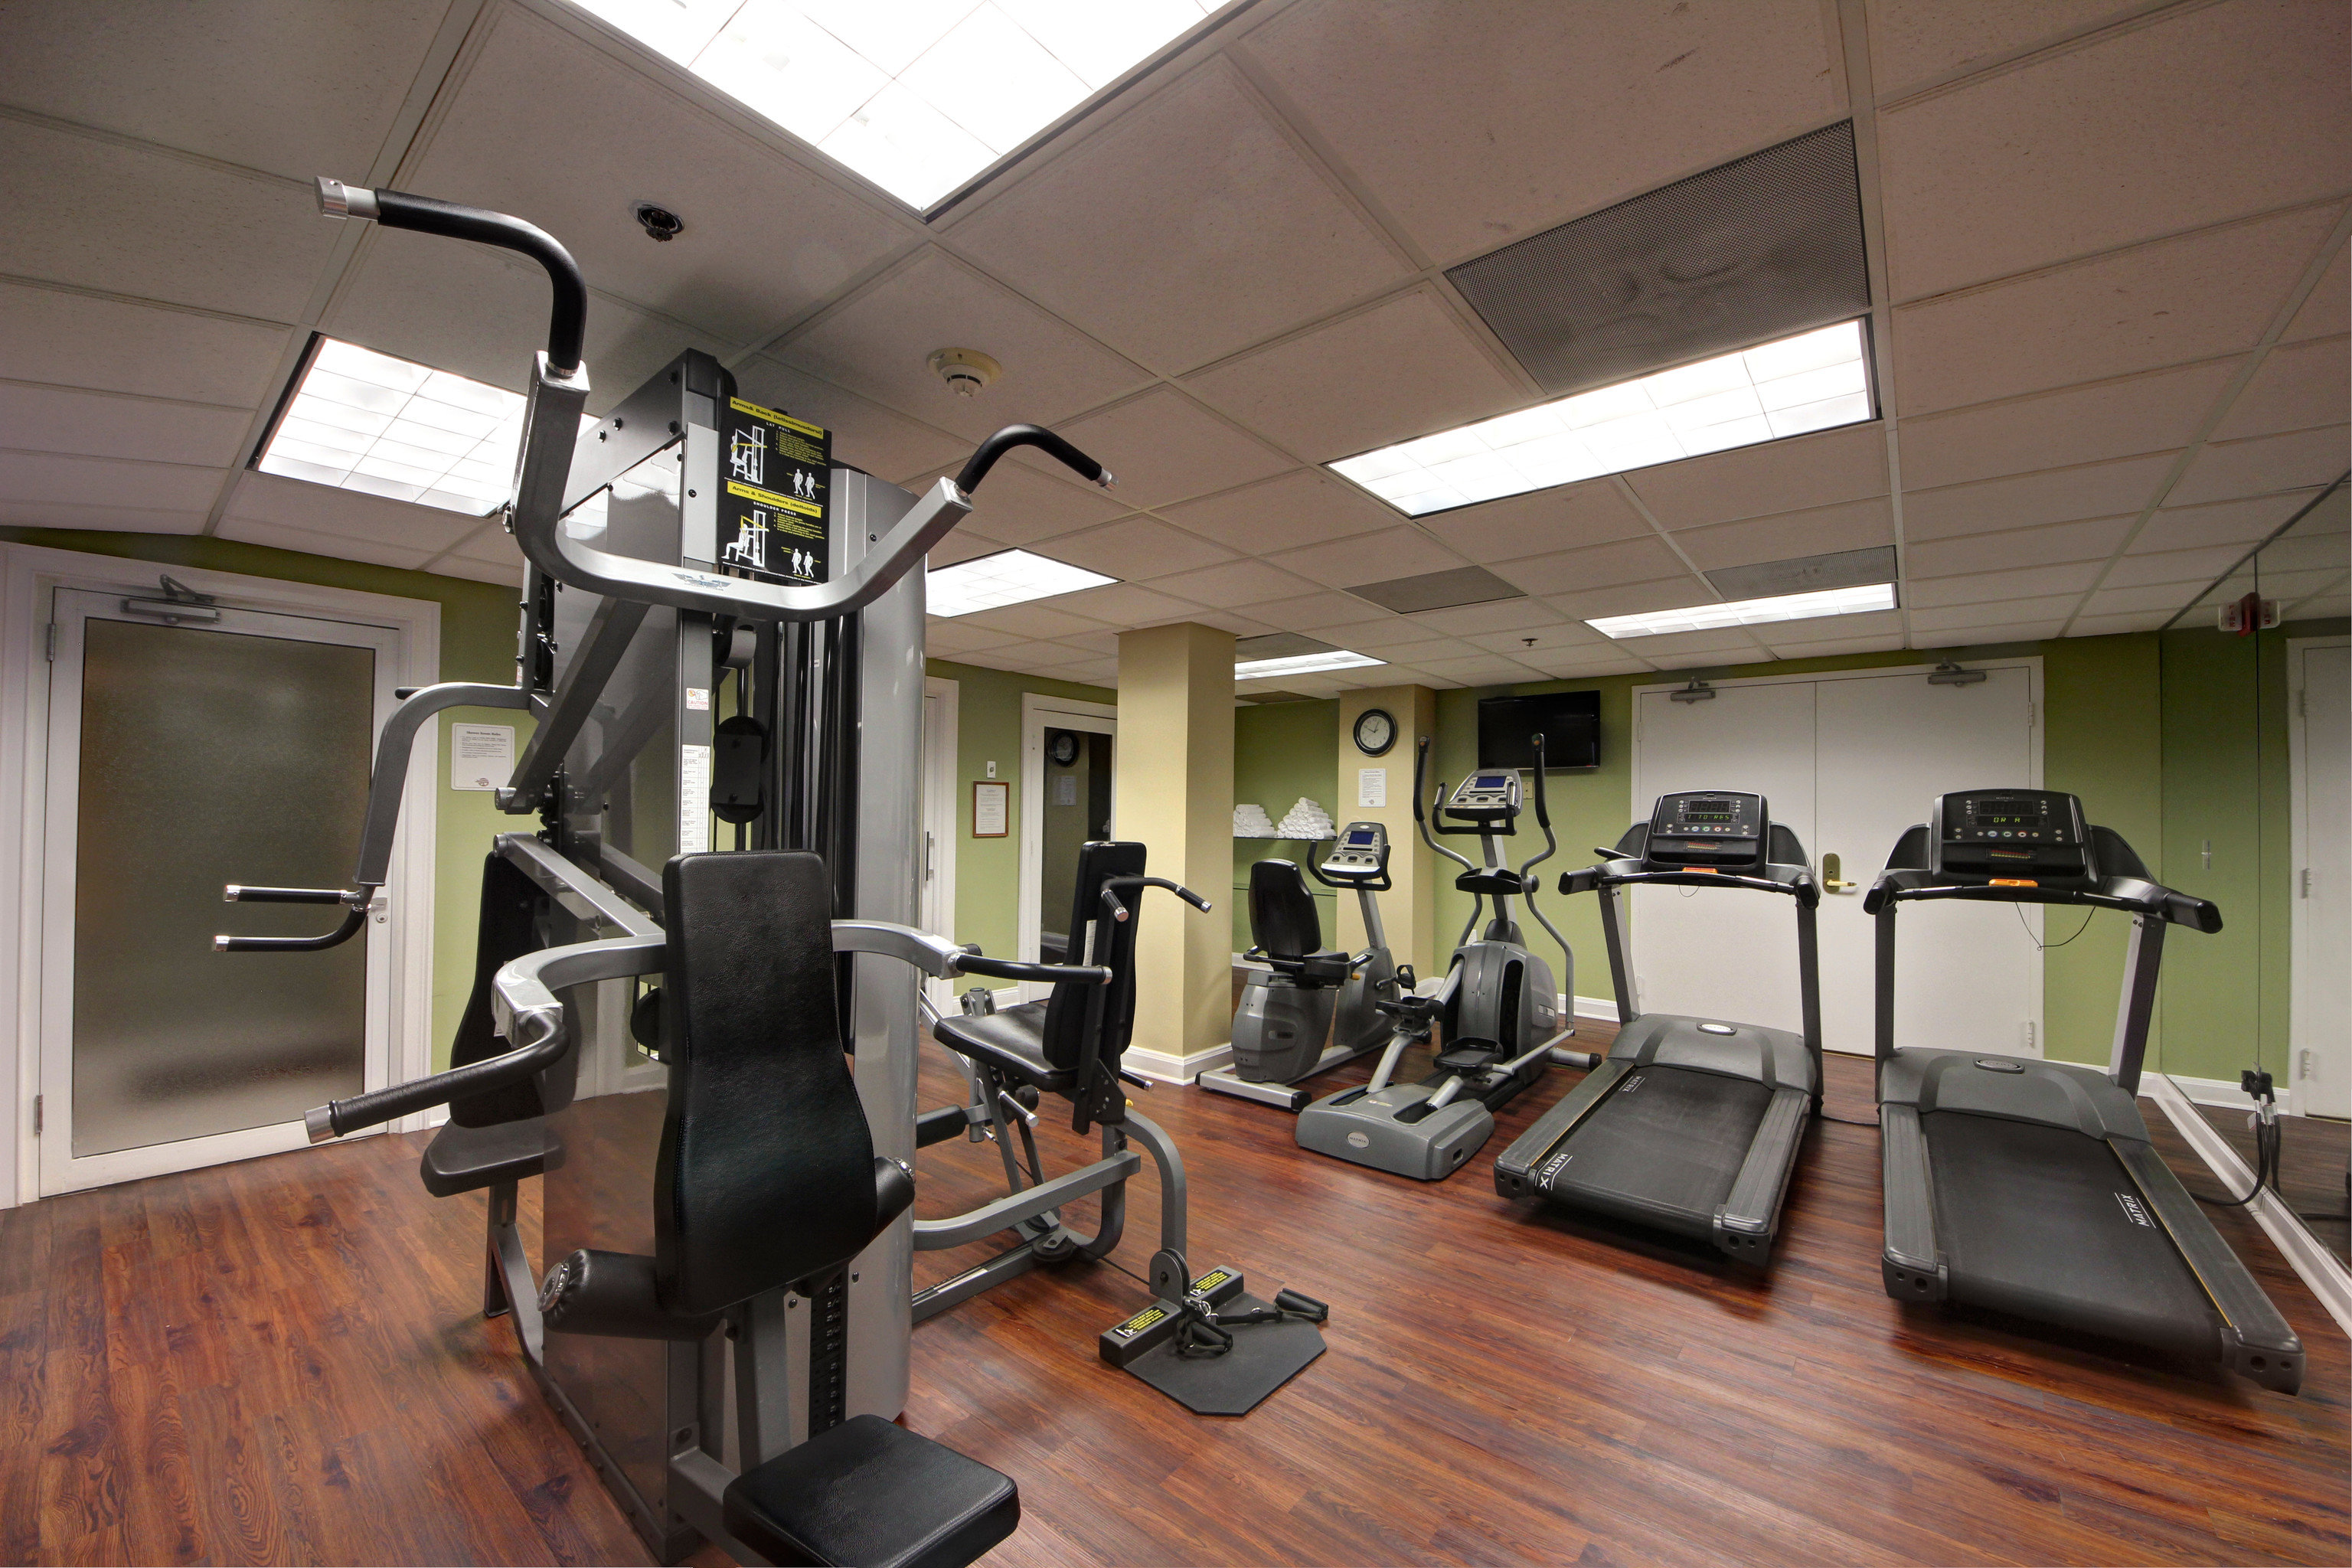 structure gym property sport venue muscle condominium physical fitness office hard